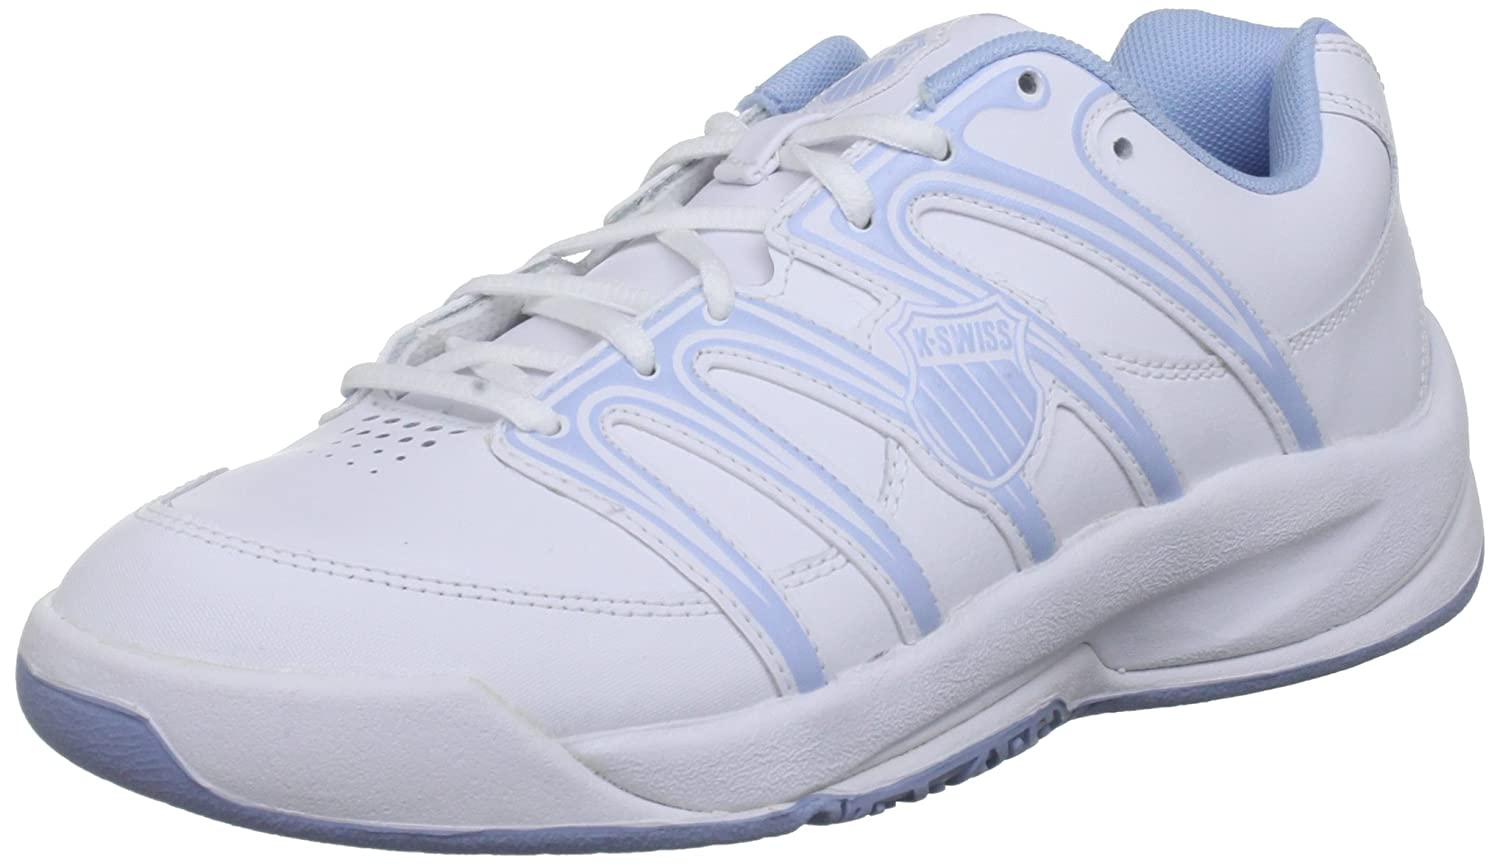 Where Can I Buy K Swiss Tennis Shoes